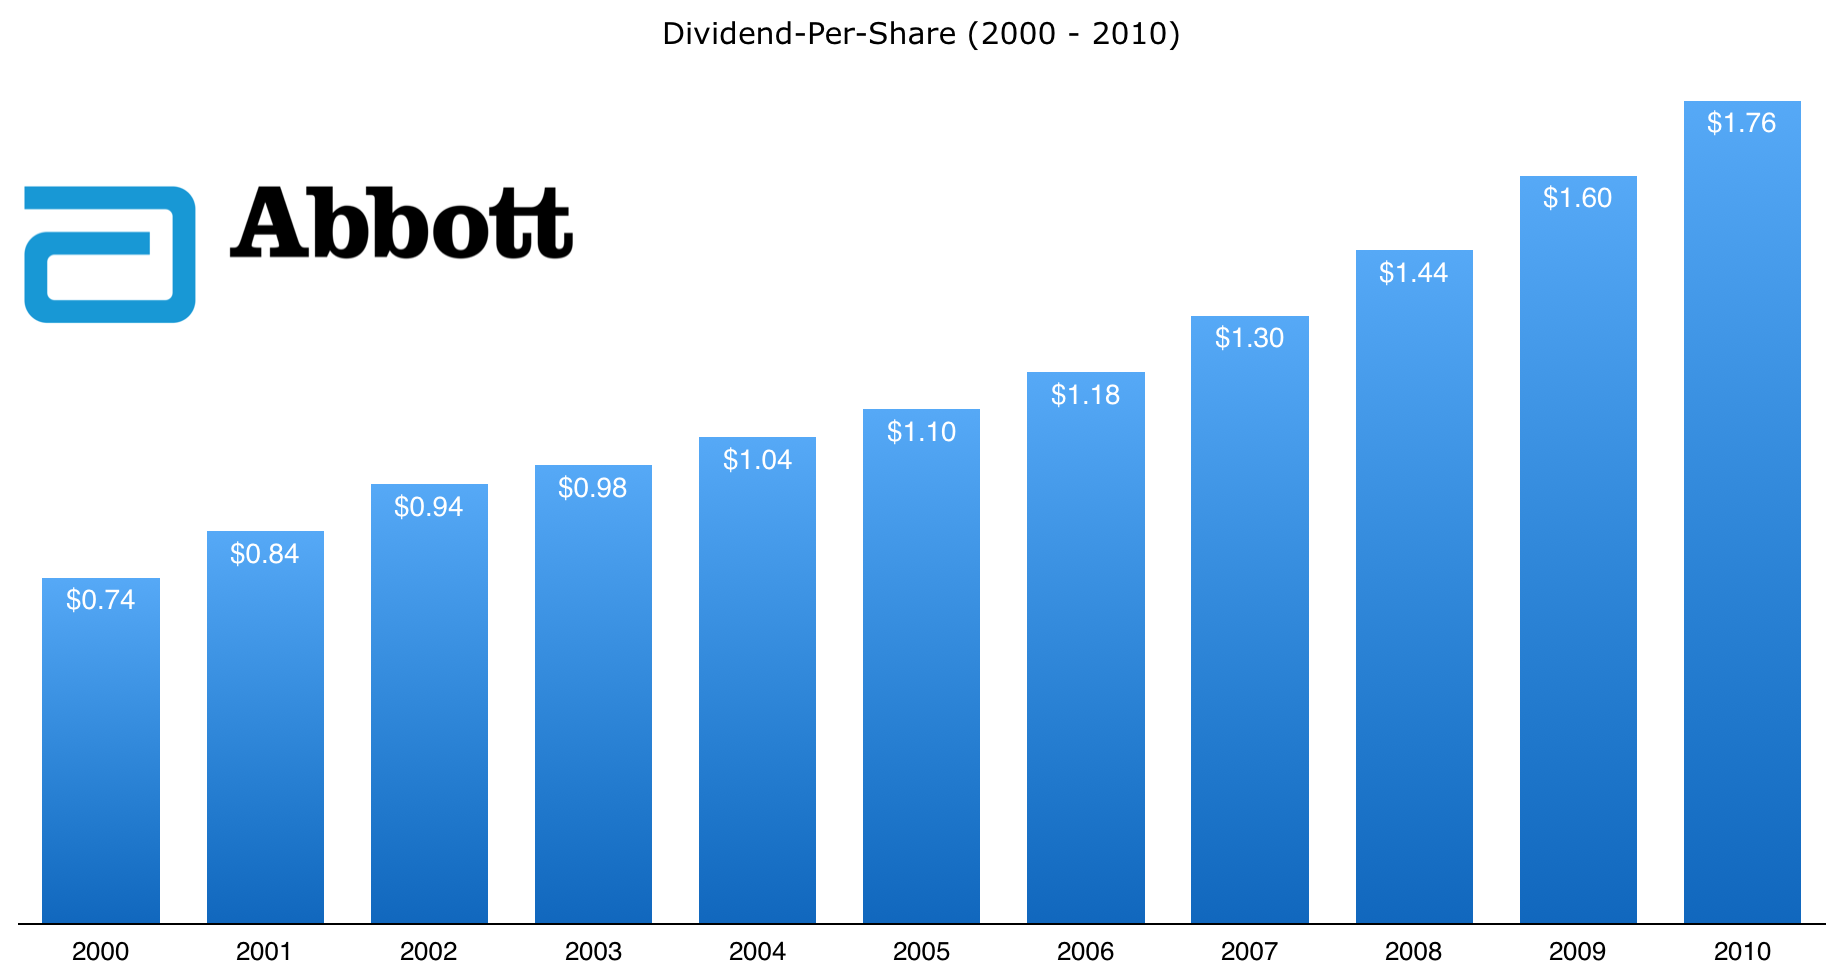 abbottlabs_dividend_history - Abbot Laboratories PNG